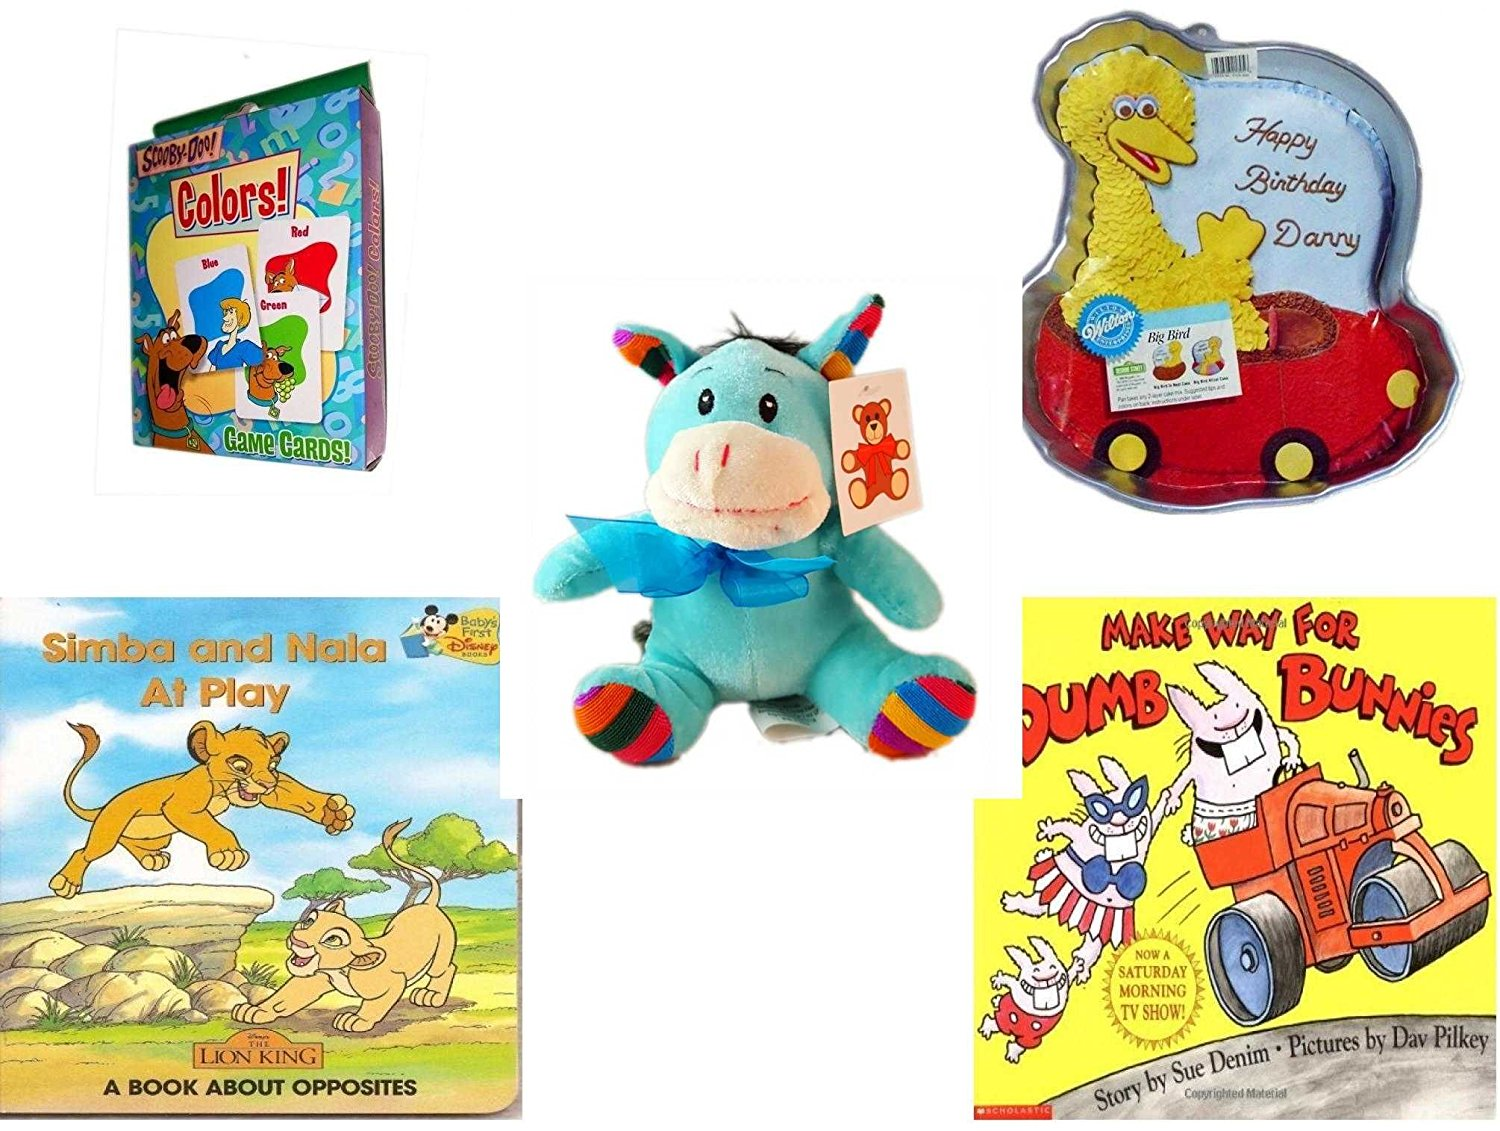 "Children's Gift Bundle - Ages 3-5 [5 Piece] - Transformers Rescue Bots Memory Game - Sesame Street Big Bird Cake Pan - Plush Appeal Rainbow Blue Donkey Plush 6.5"" - Simba and Nala At Play: A Book A"